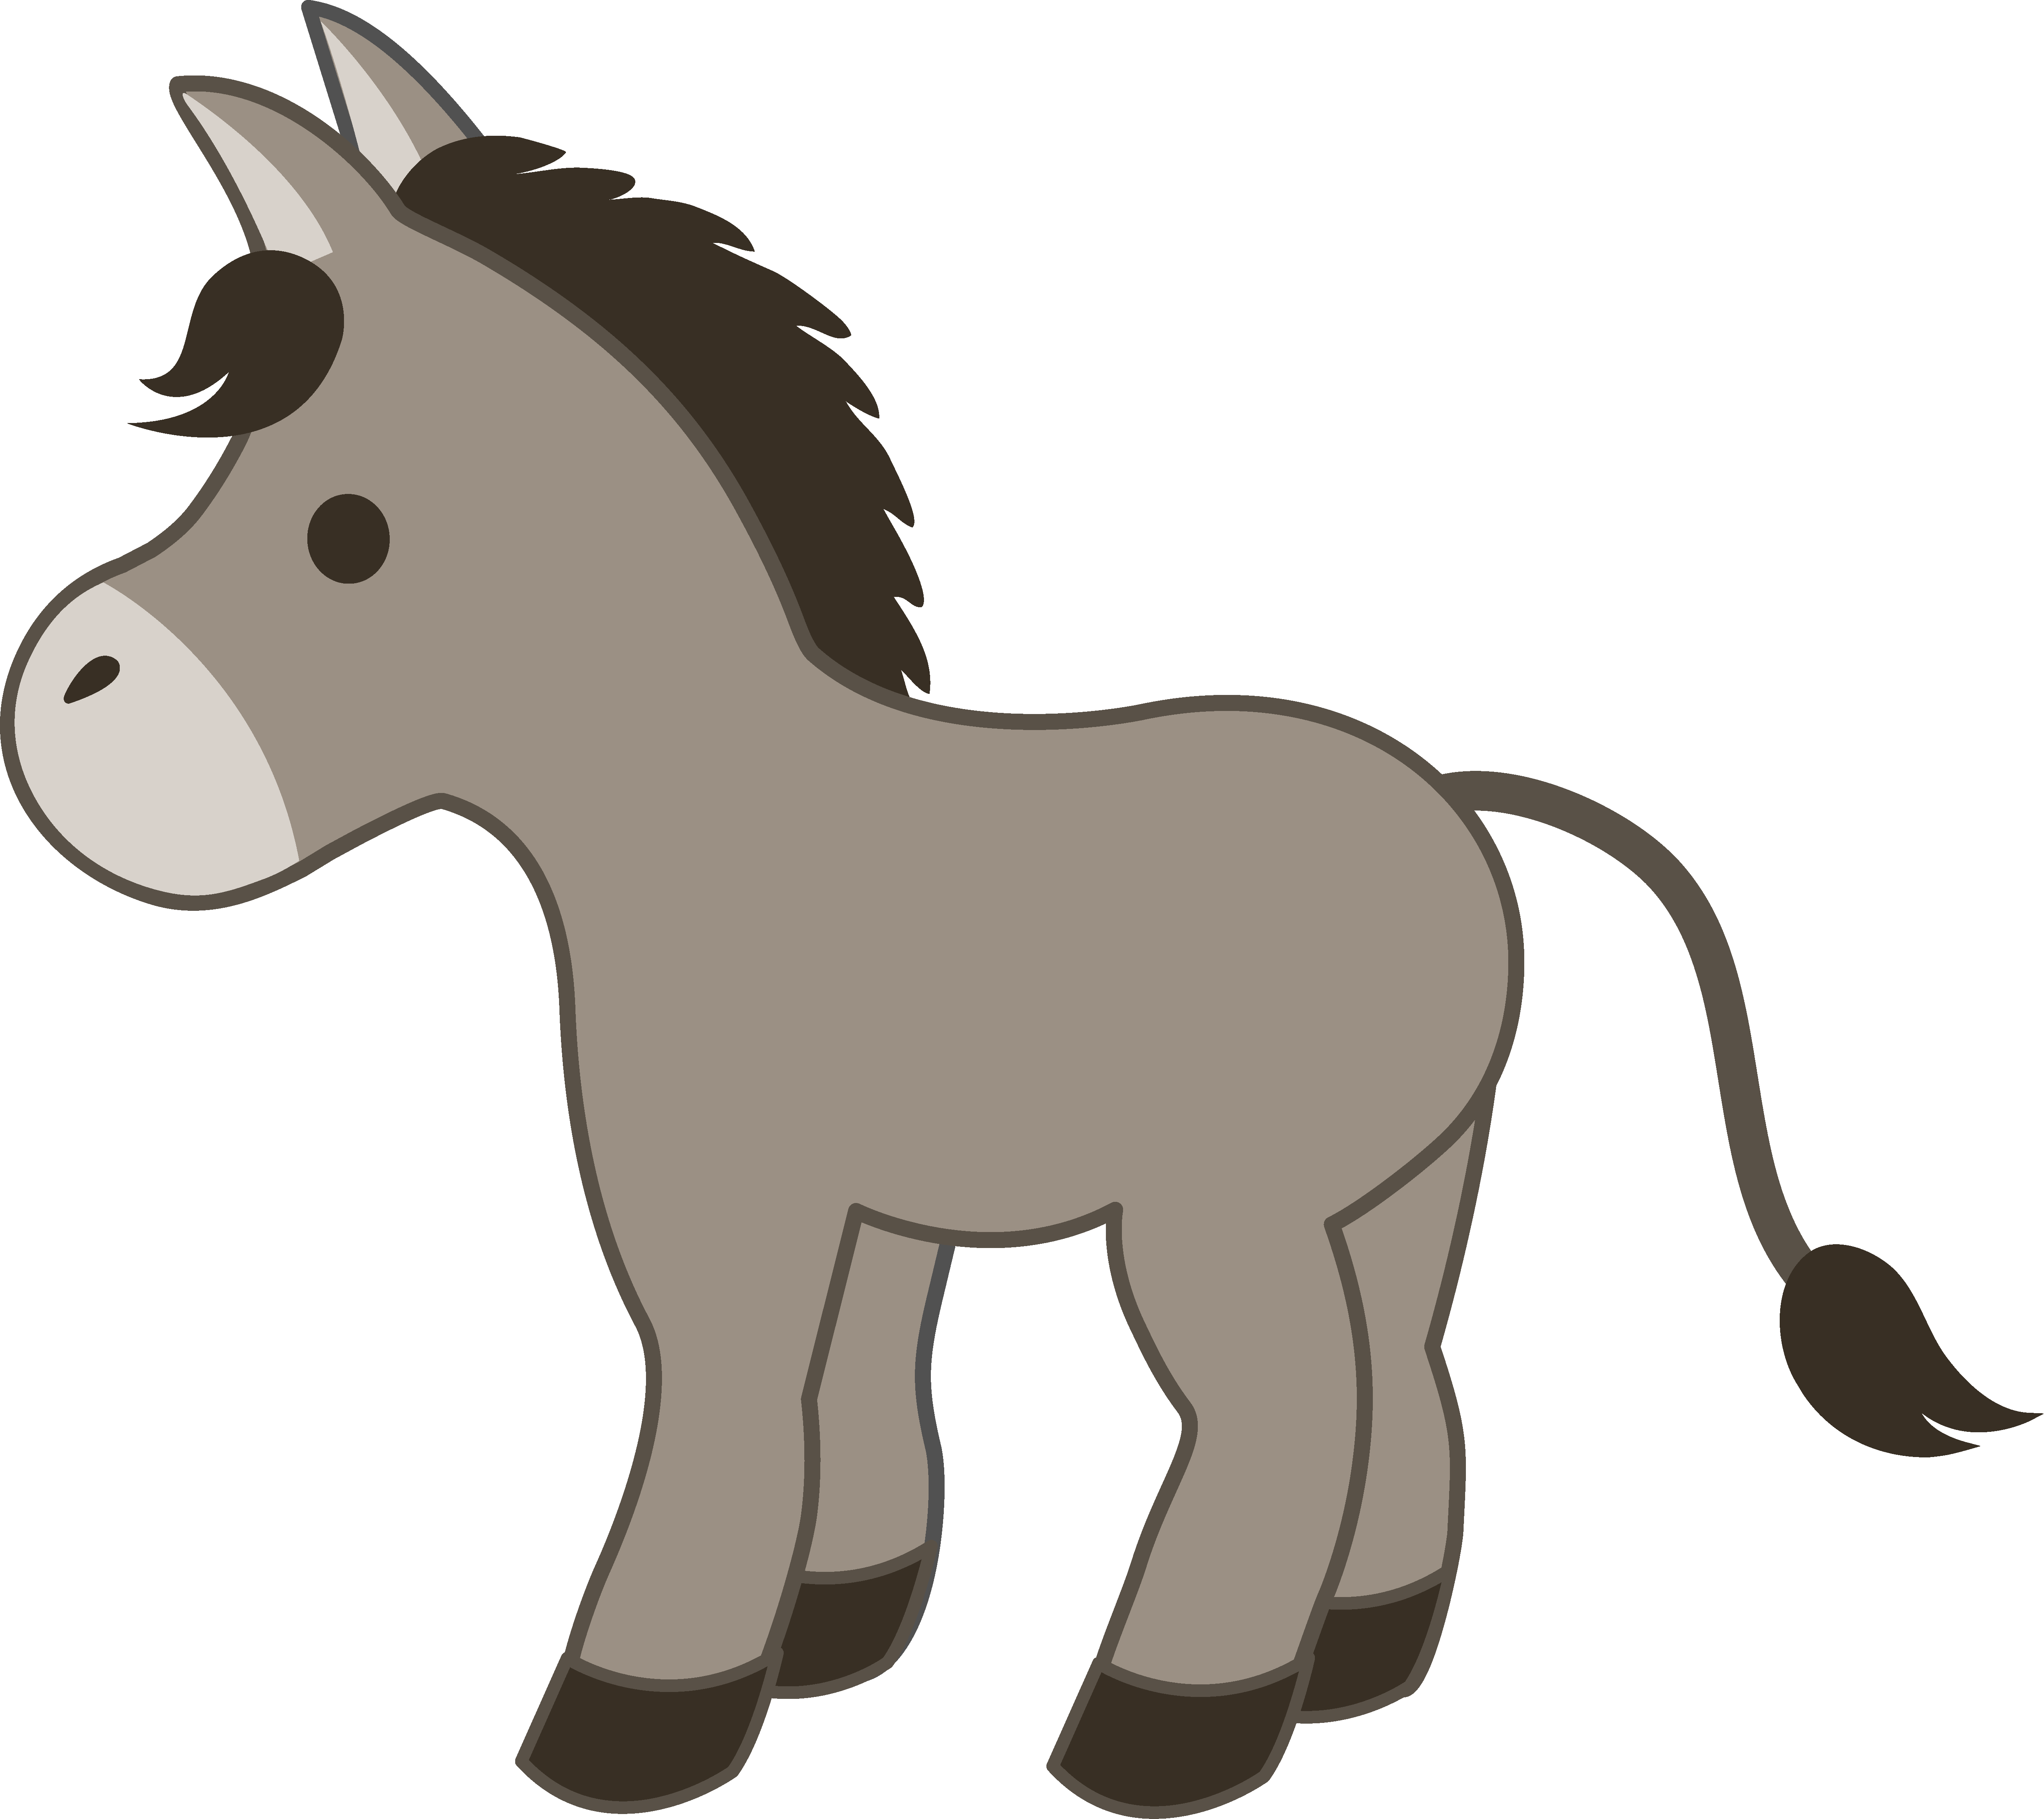 Free Donkey Cliparts, Download Free Clip Art, Free Clip Art.